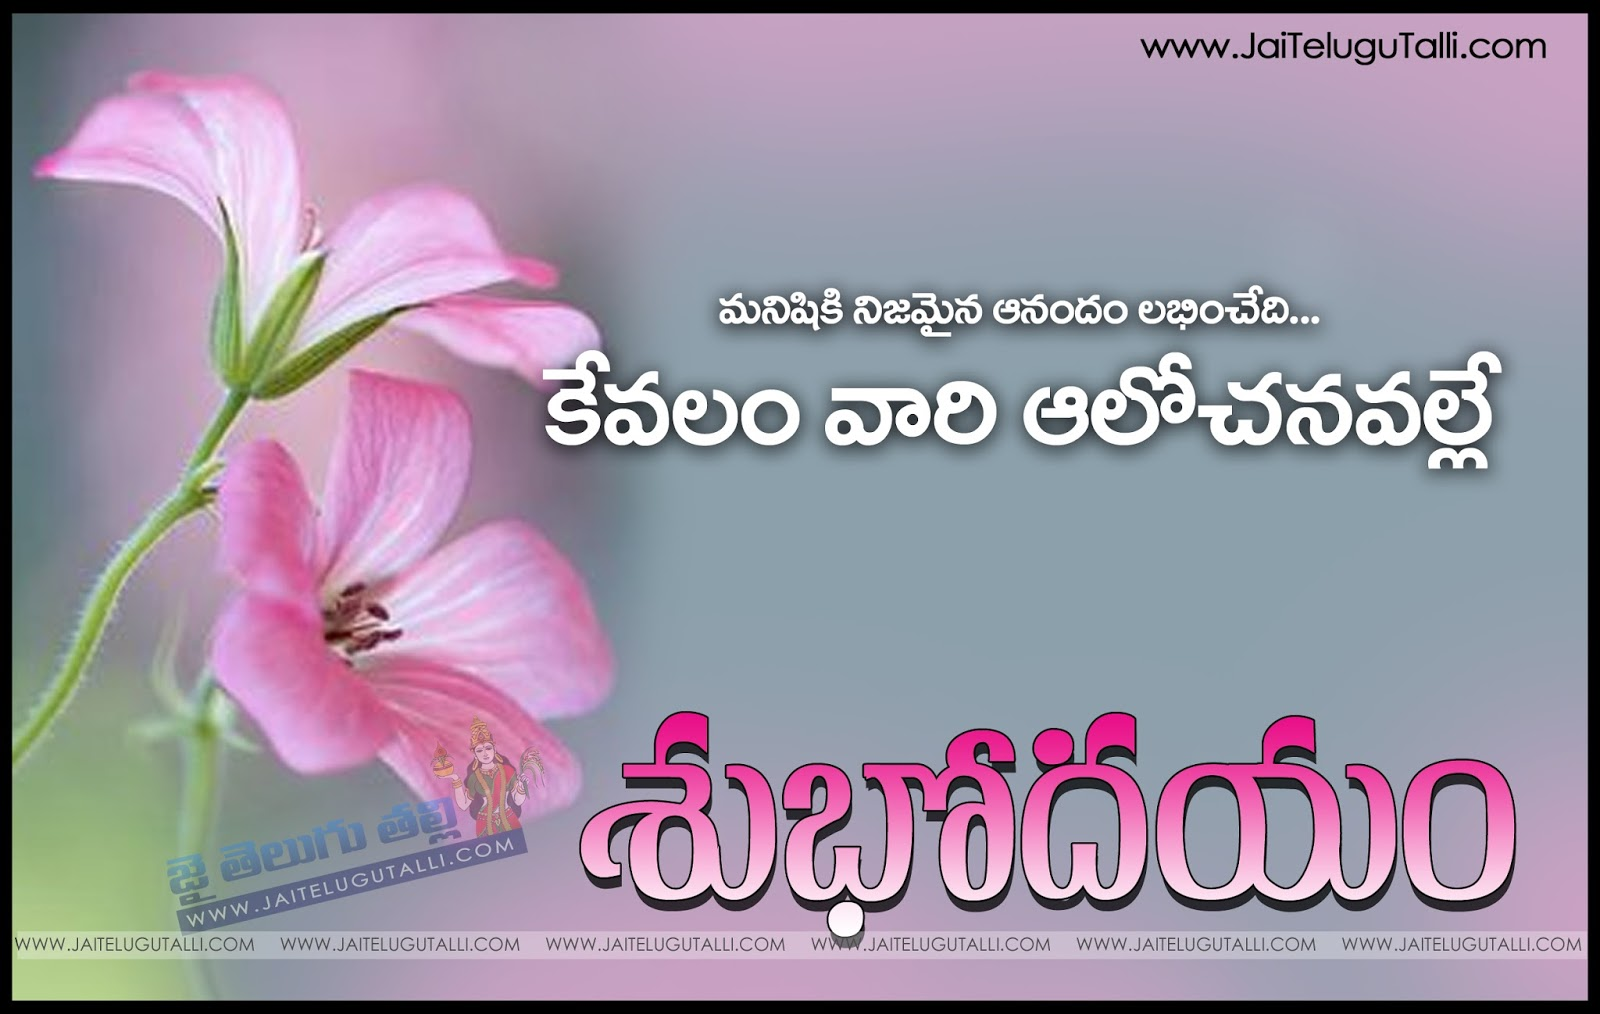 Good Morning Pics With Quotes In Telugu Vinnyoleo Vegetalinfo